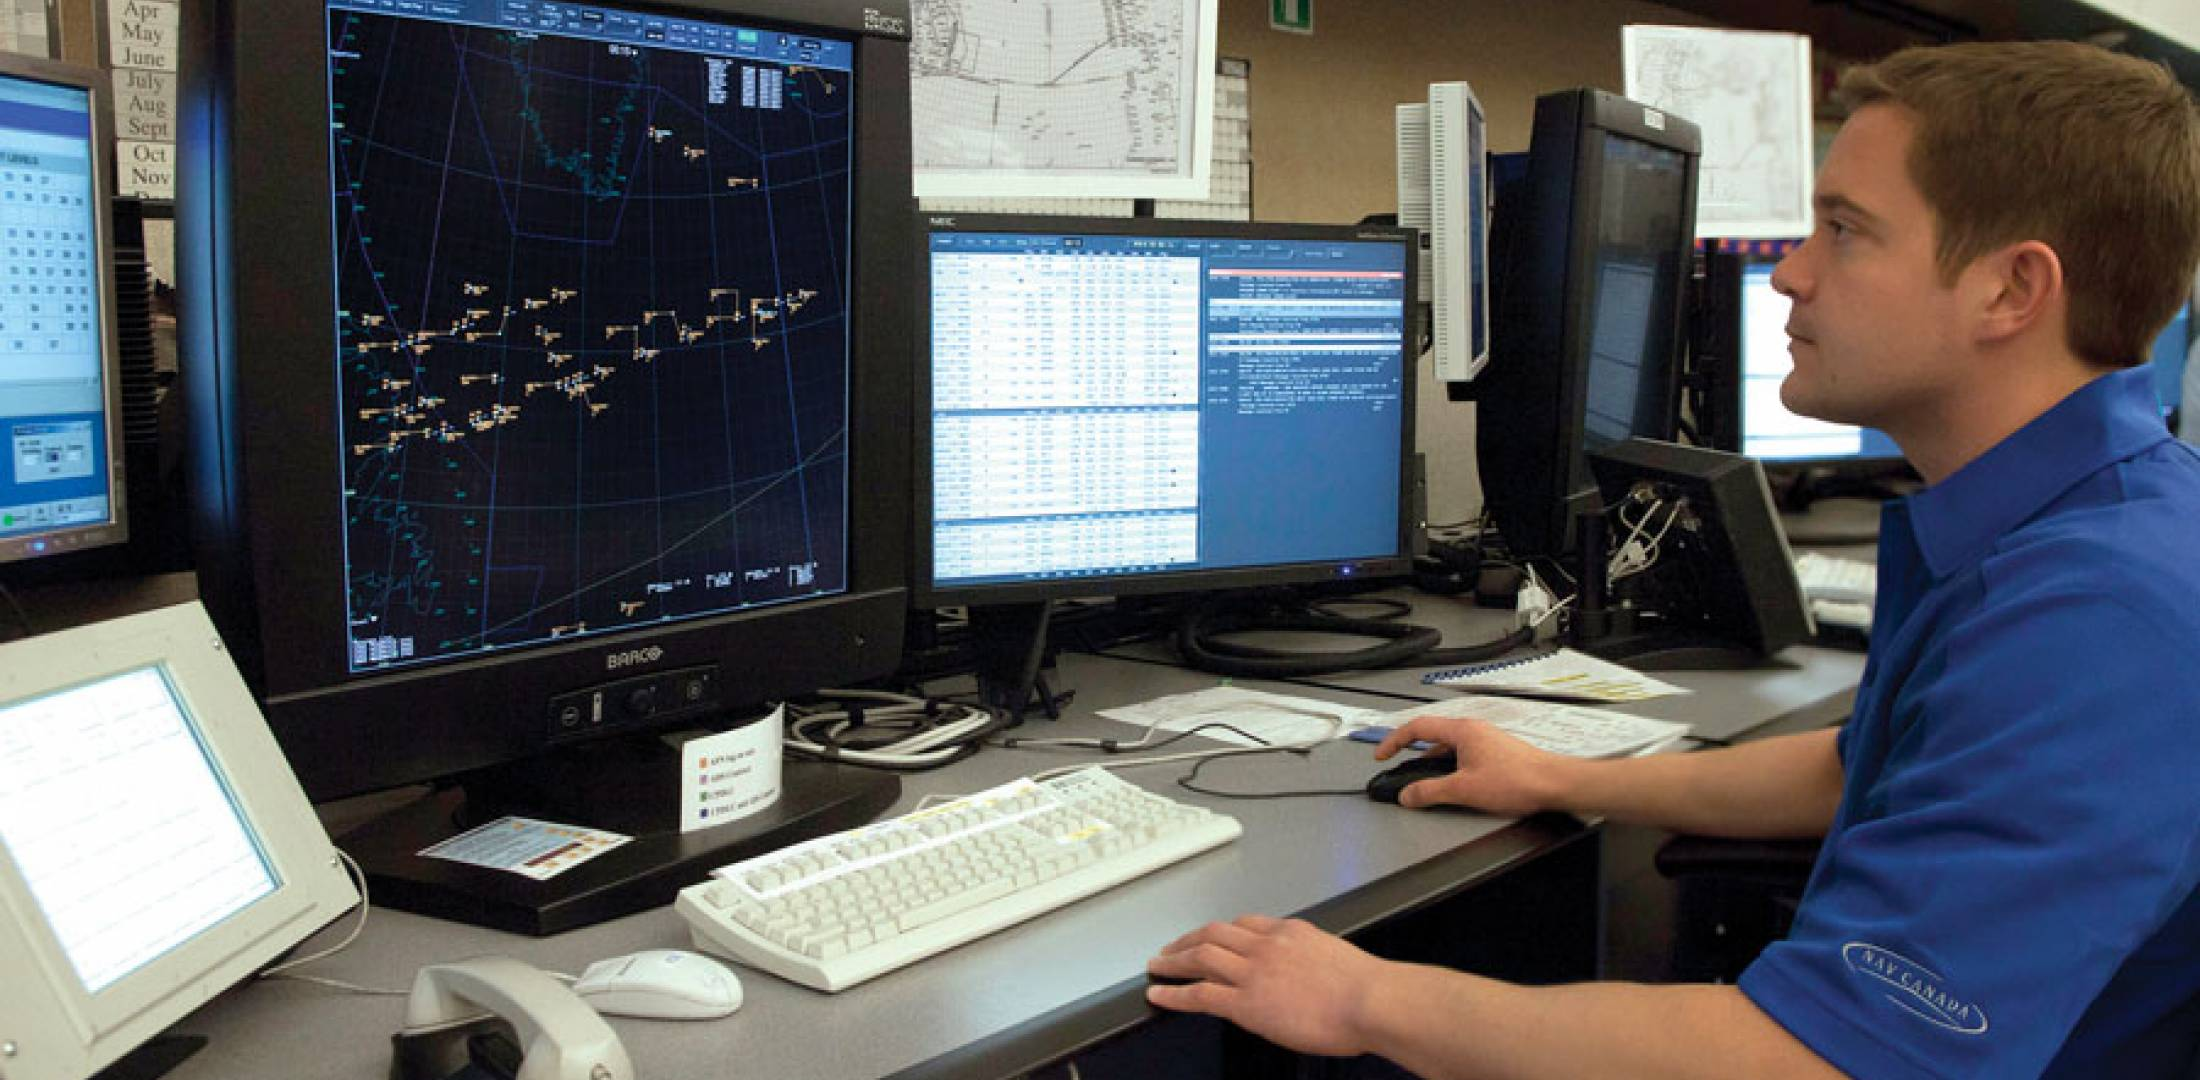 Canada's Private ATC System Offers Alternative for Cost-cutting